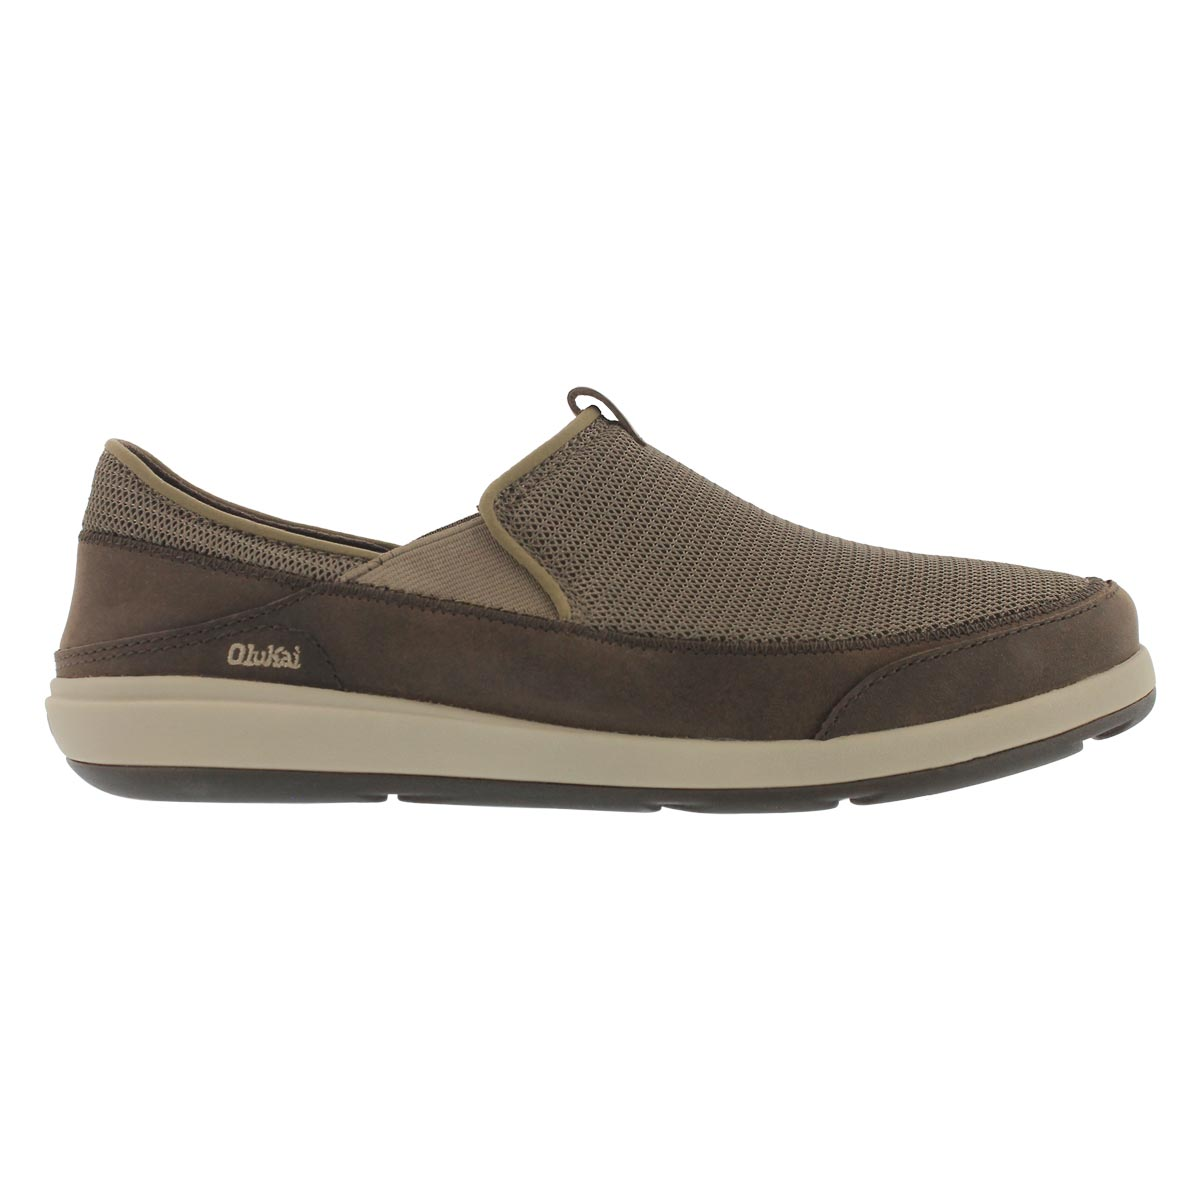 Mns Makia mustang slip on casual shoe